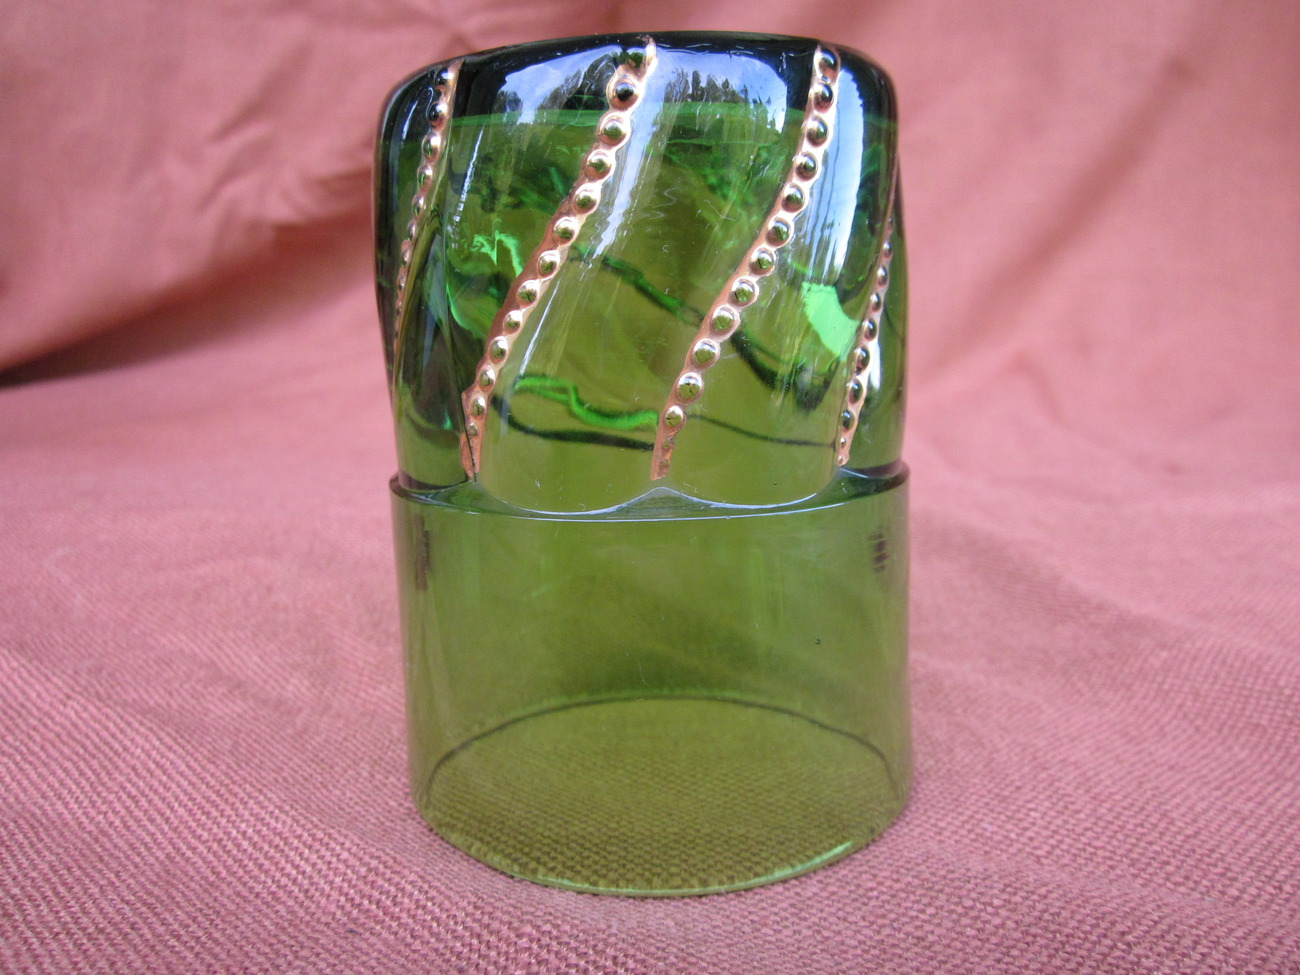 Beaded Swirl Tumbler Green and Gold George Duncan Antique Glass Cup